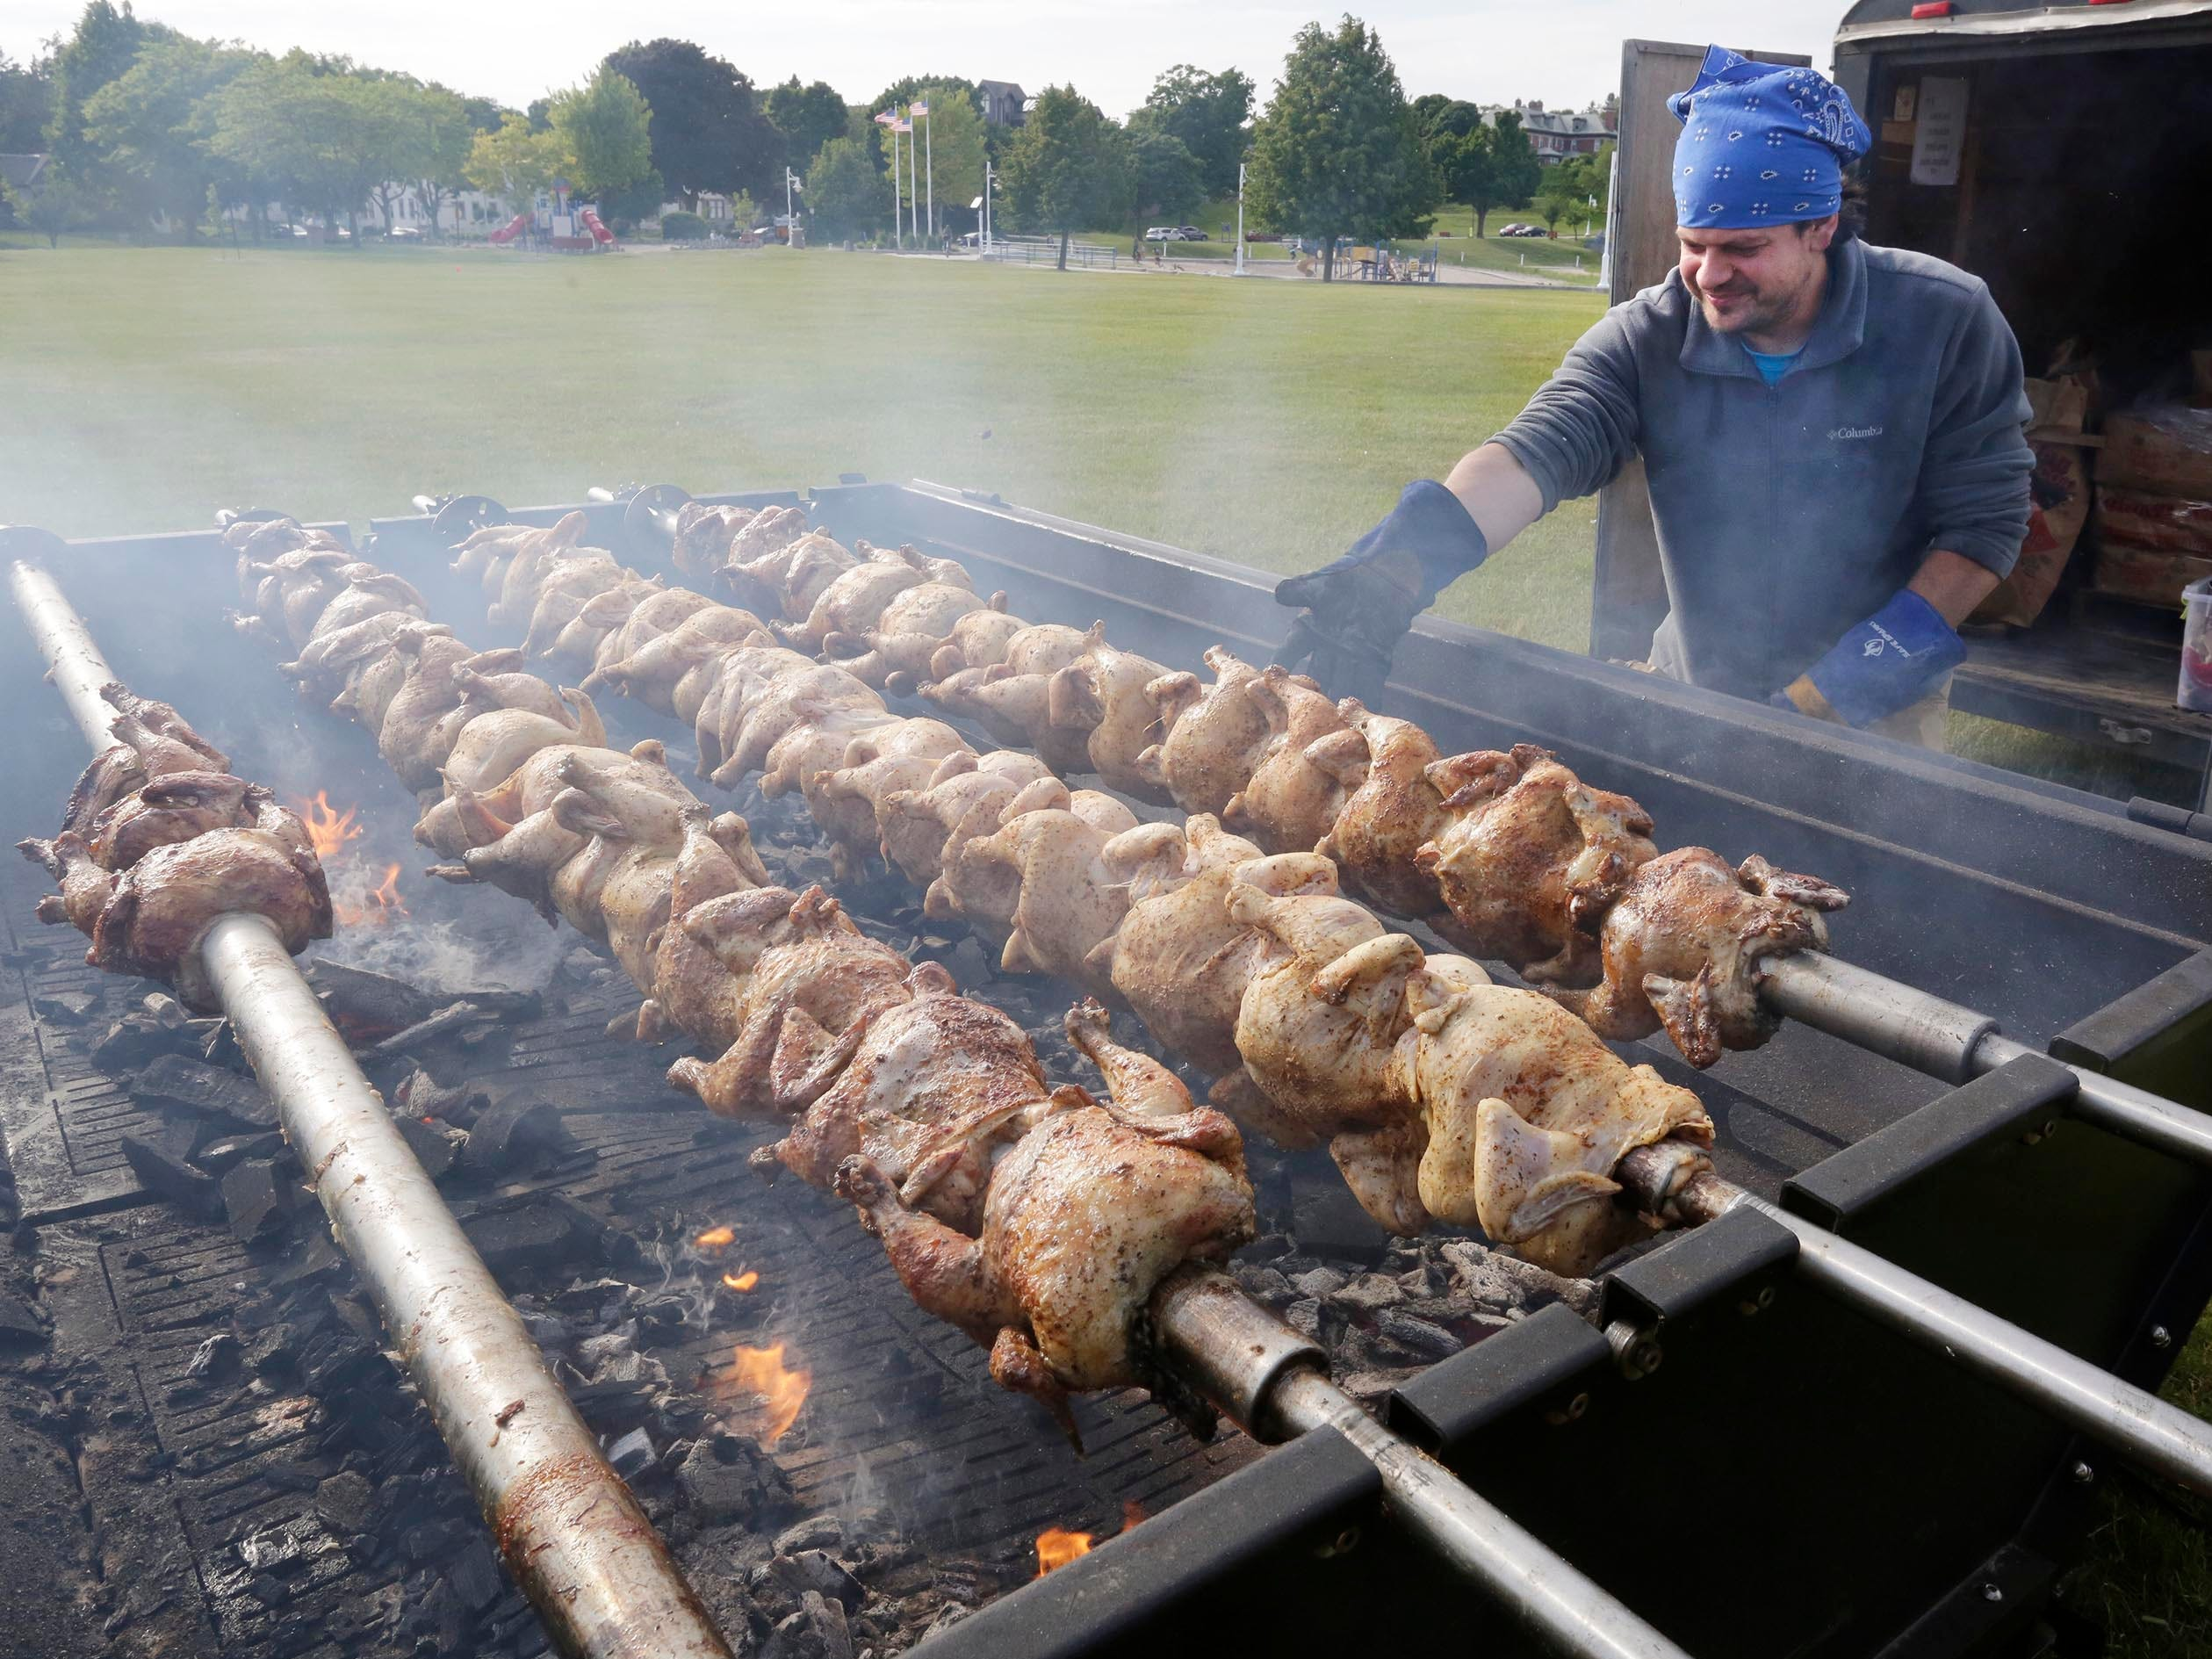 Stavros Bhronis of Sheboygan add charcoal to the grill during the 75th Annual Greek Festival, Friday, June 22, 2018, in Sheboygan, Wis.